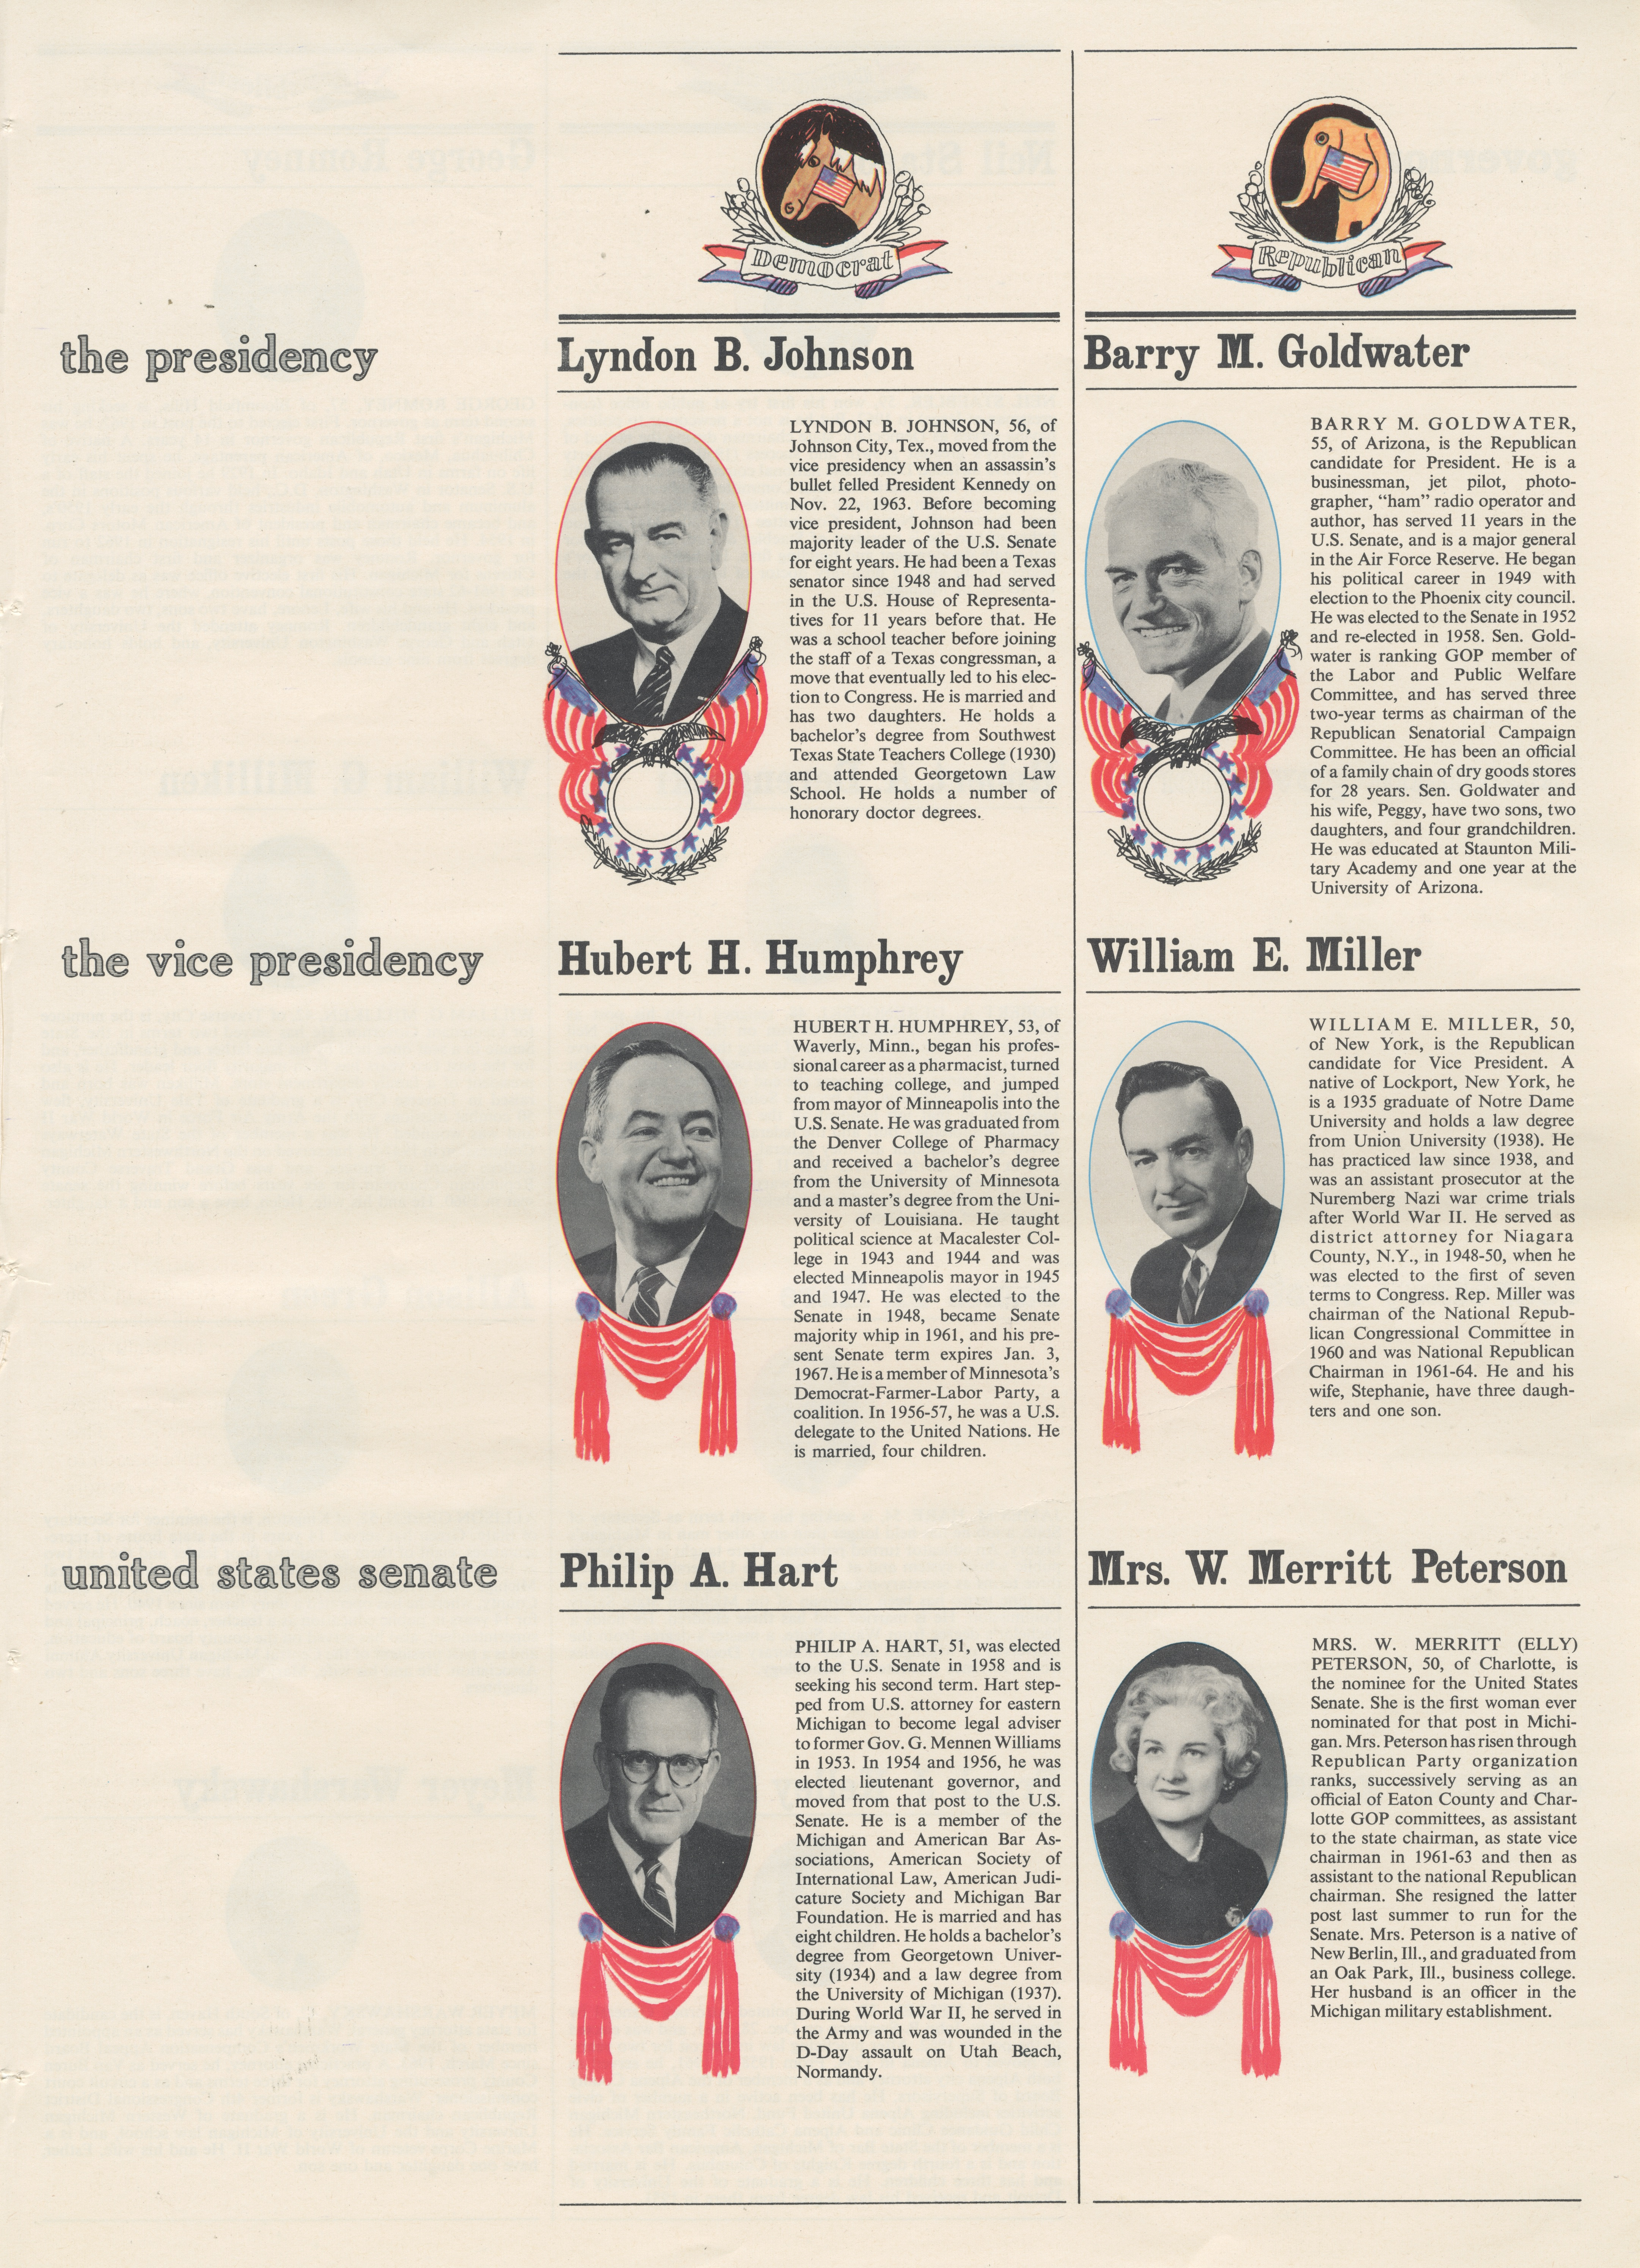 What You Should Know To Make Your Vote Count In 1964 ~ The Presidency, The Vice Presidency, United States Senate image